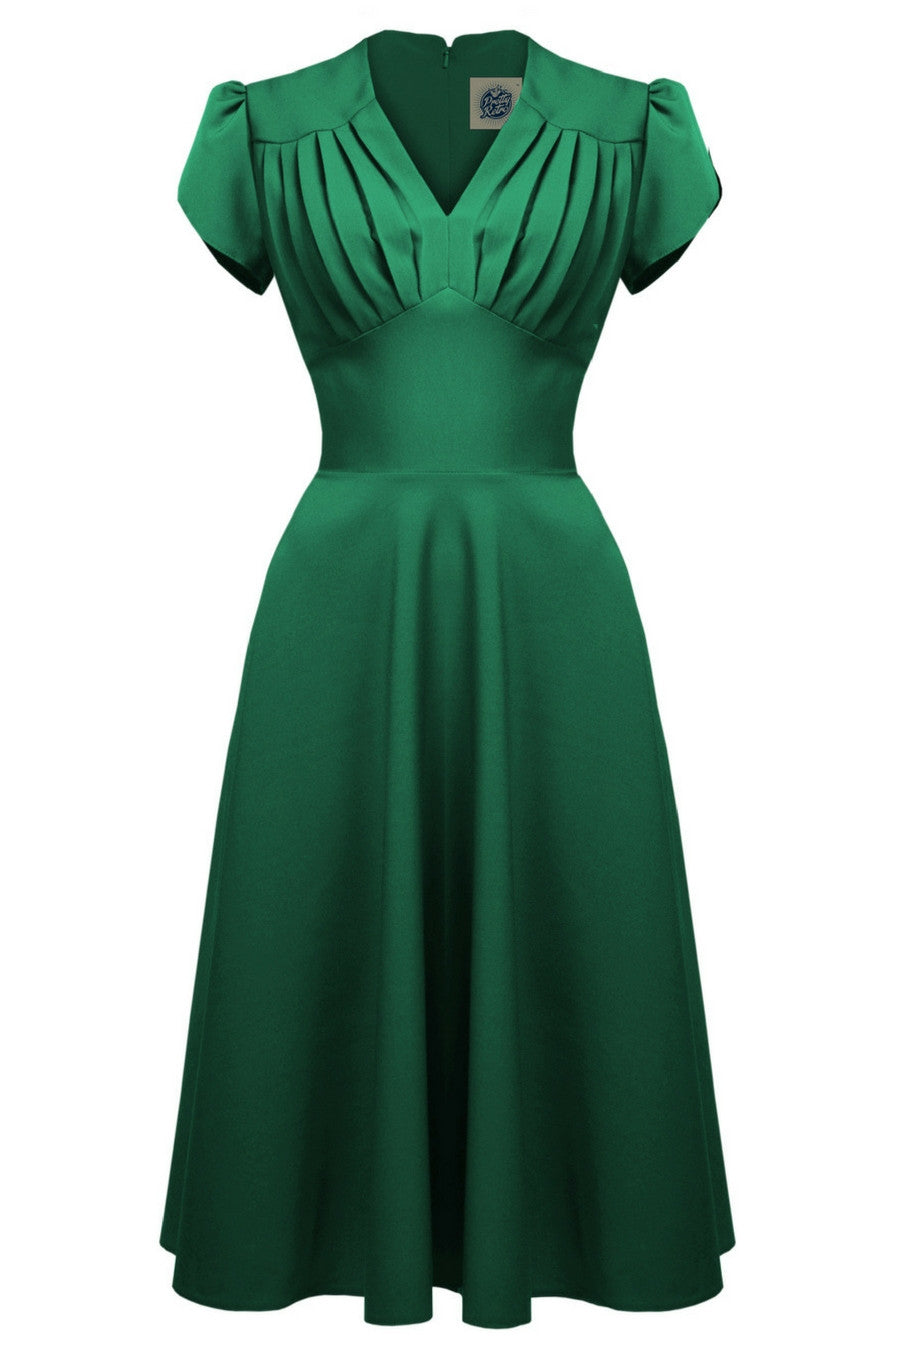 1940s swing dress in emerald green